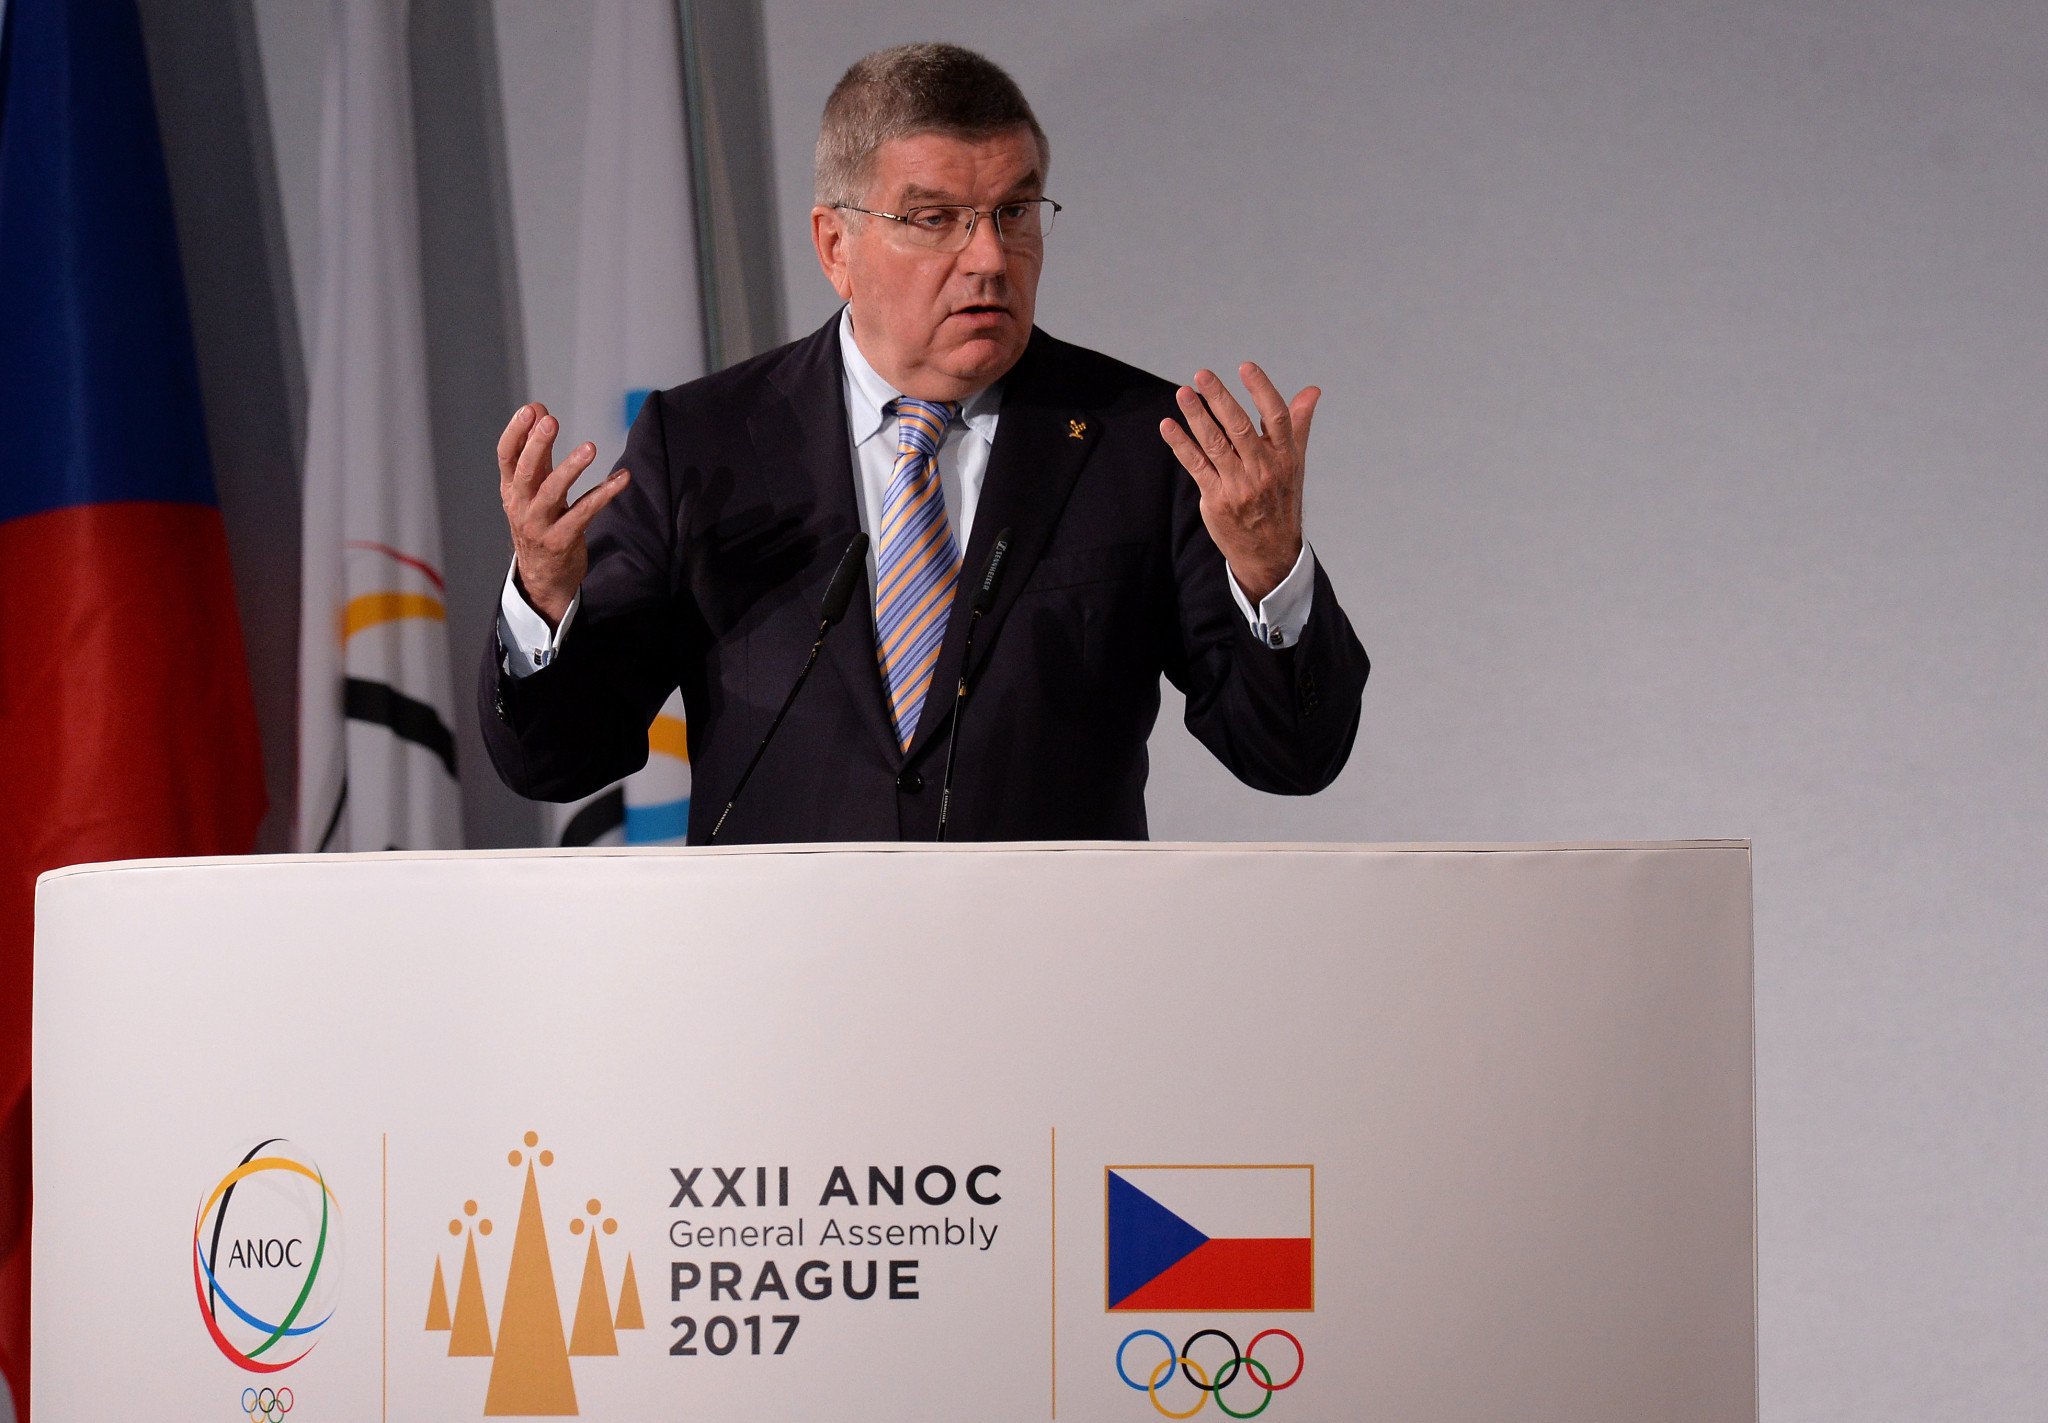 IOC President Thomas Bach pictured speaking at the ANOC General Assembly ©Getty Images